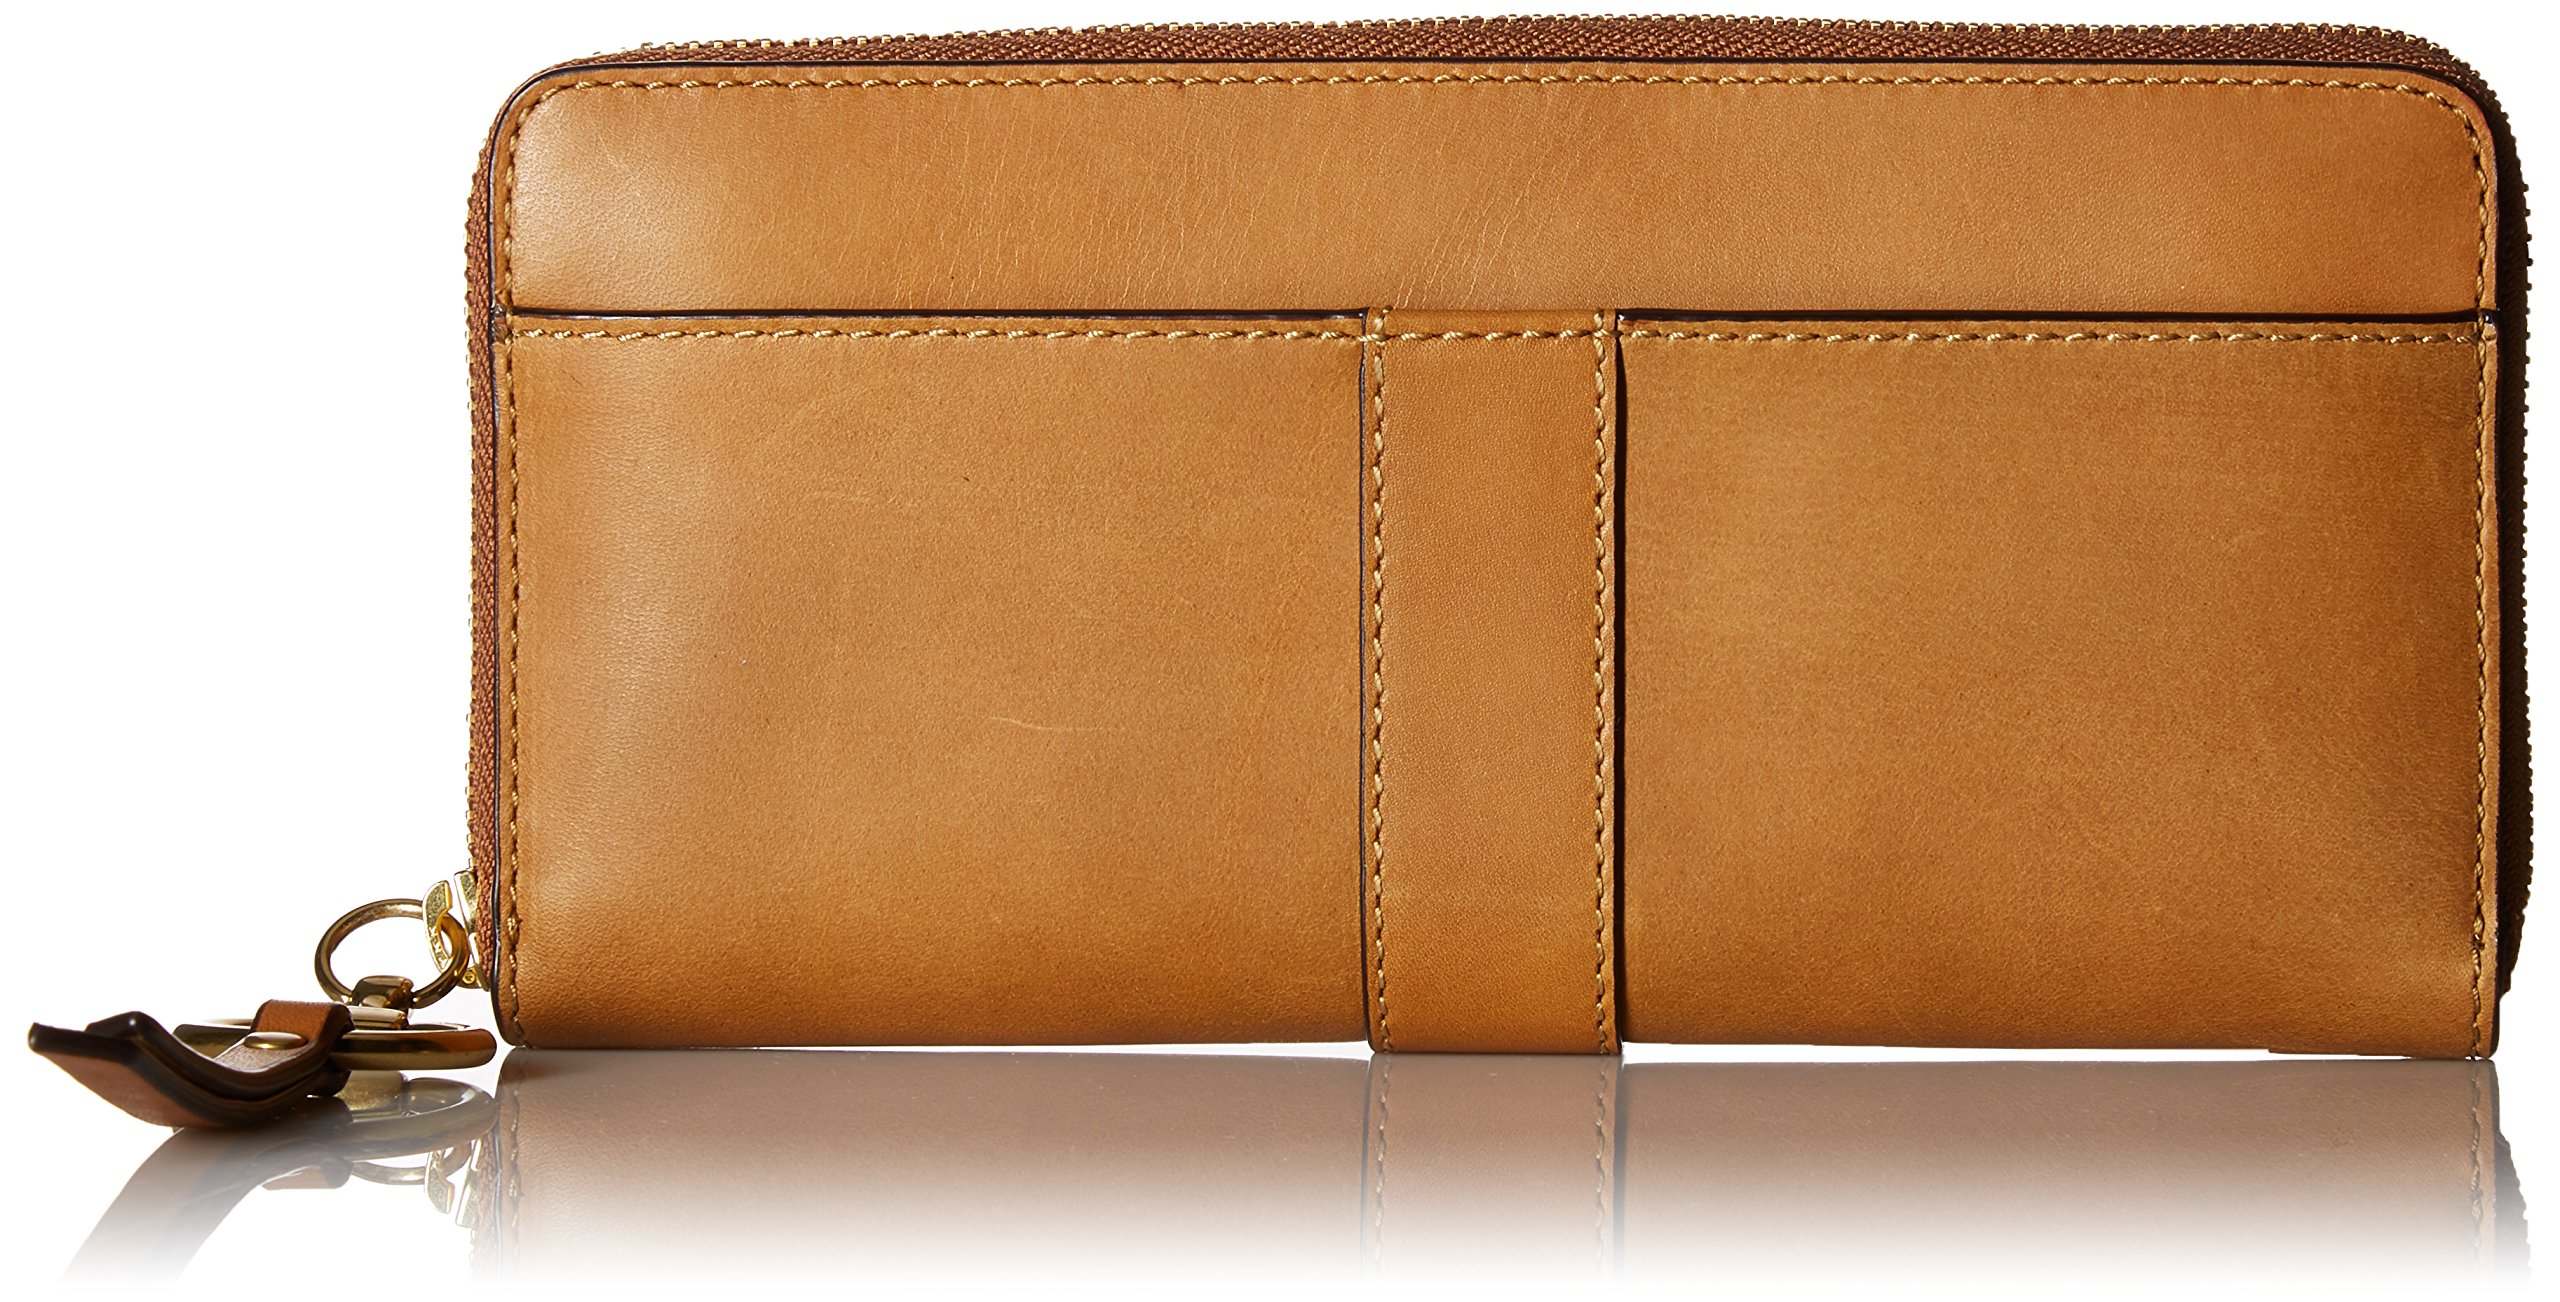 Ilana Harness Zip Wallet Antique Veg Tan Wallet, COGNAC, One Size